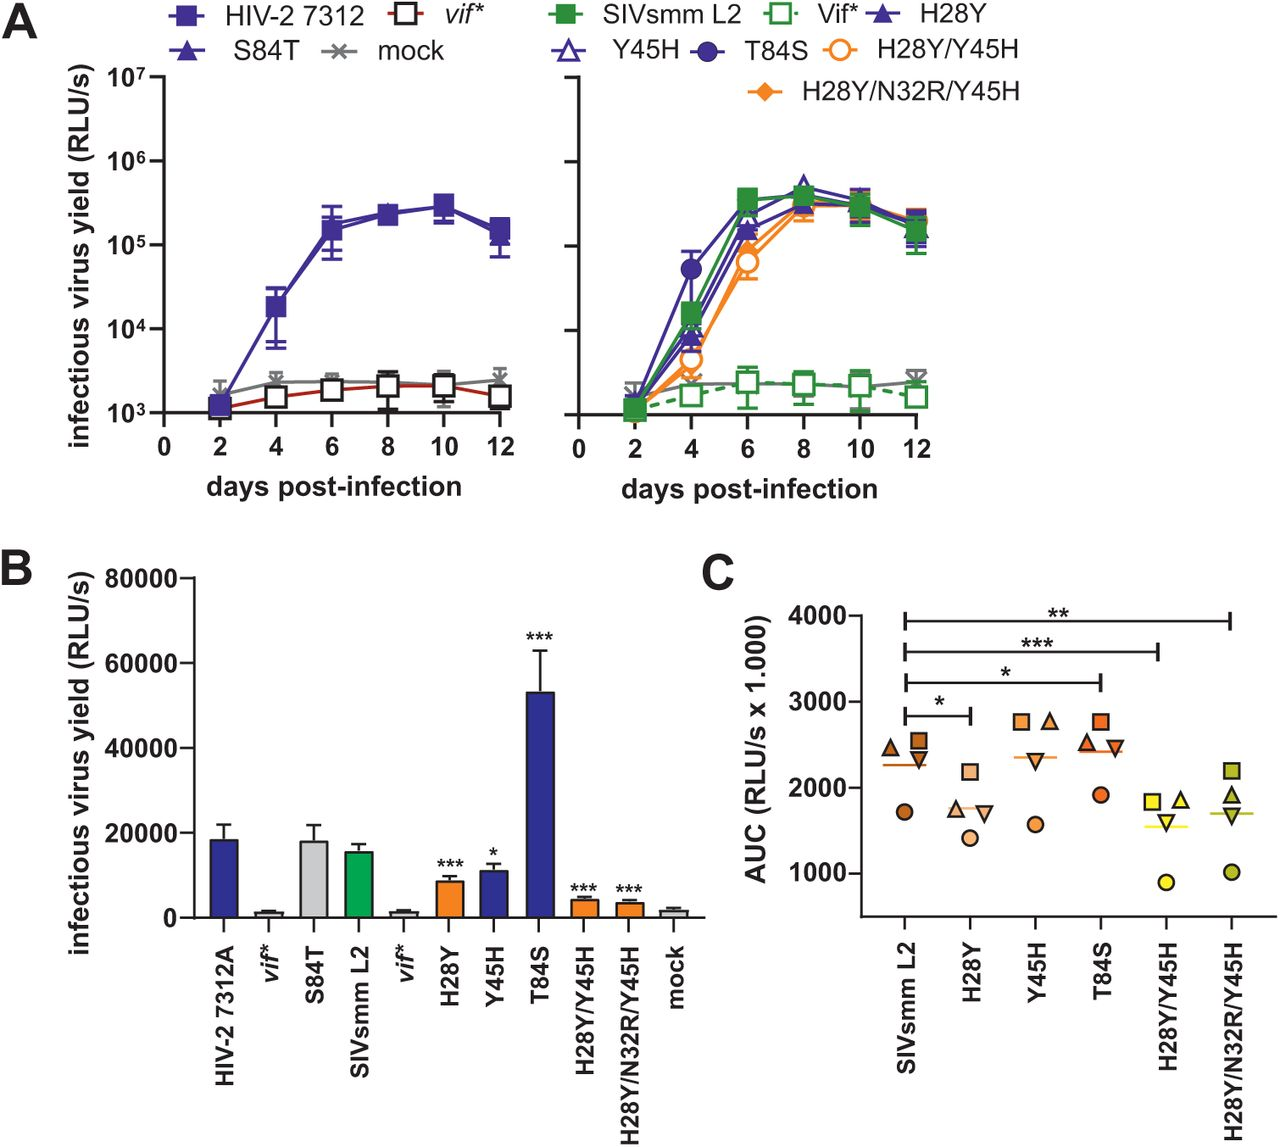 Replication of Vif mutant HIV-2 and SIVsmm IMCs in human CD4+ T cells. (A) Mean infectious virus yields measured by triplicate infection of TZM-bl reporter cells with normalized volumes of the supernatants from infected CD4+ T cell cultures derived from four different PBMC donors. ( B ) Infectious virus yields at 4 days post-infection. ( C ) Cumulative infectious virus production in PBMCs infected with the indicated SIVsmm constructs. Shown are AUCs for the replication kinetics as indicated in panel A but calculated for each of the four donors (indicated by a different symbol) individually. *, P